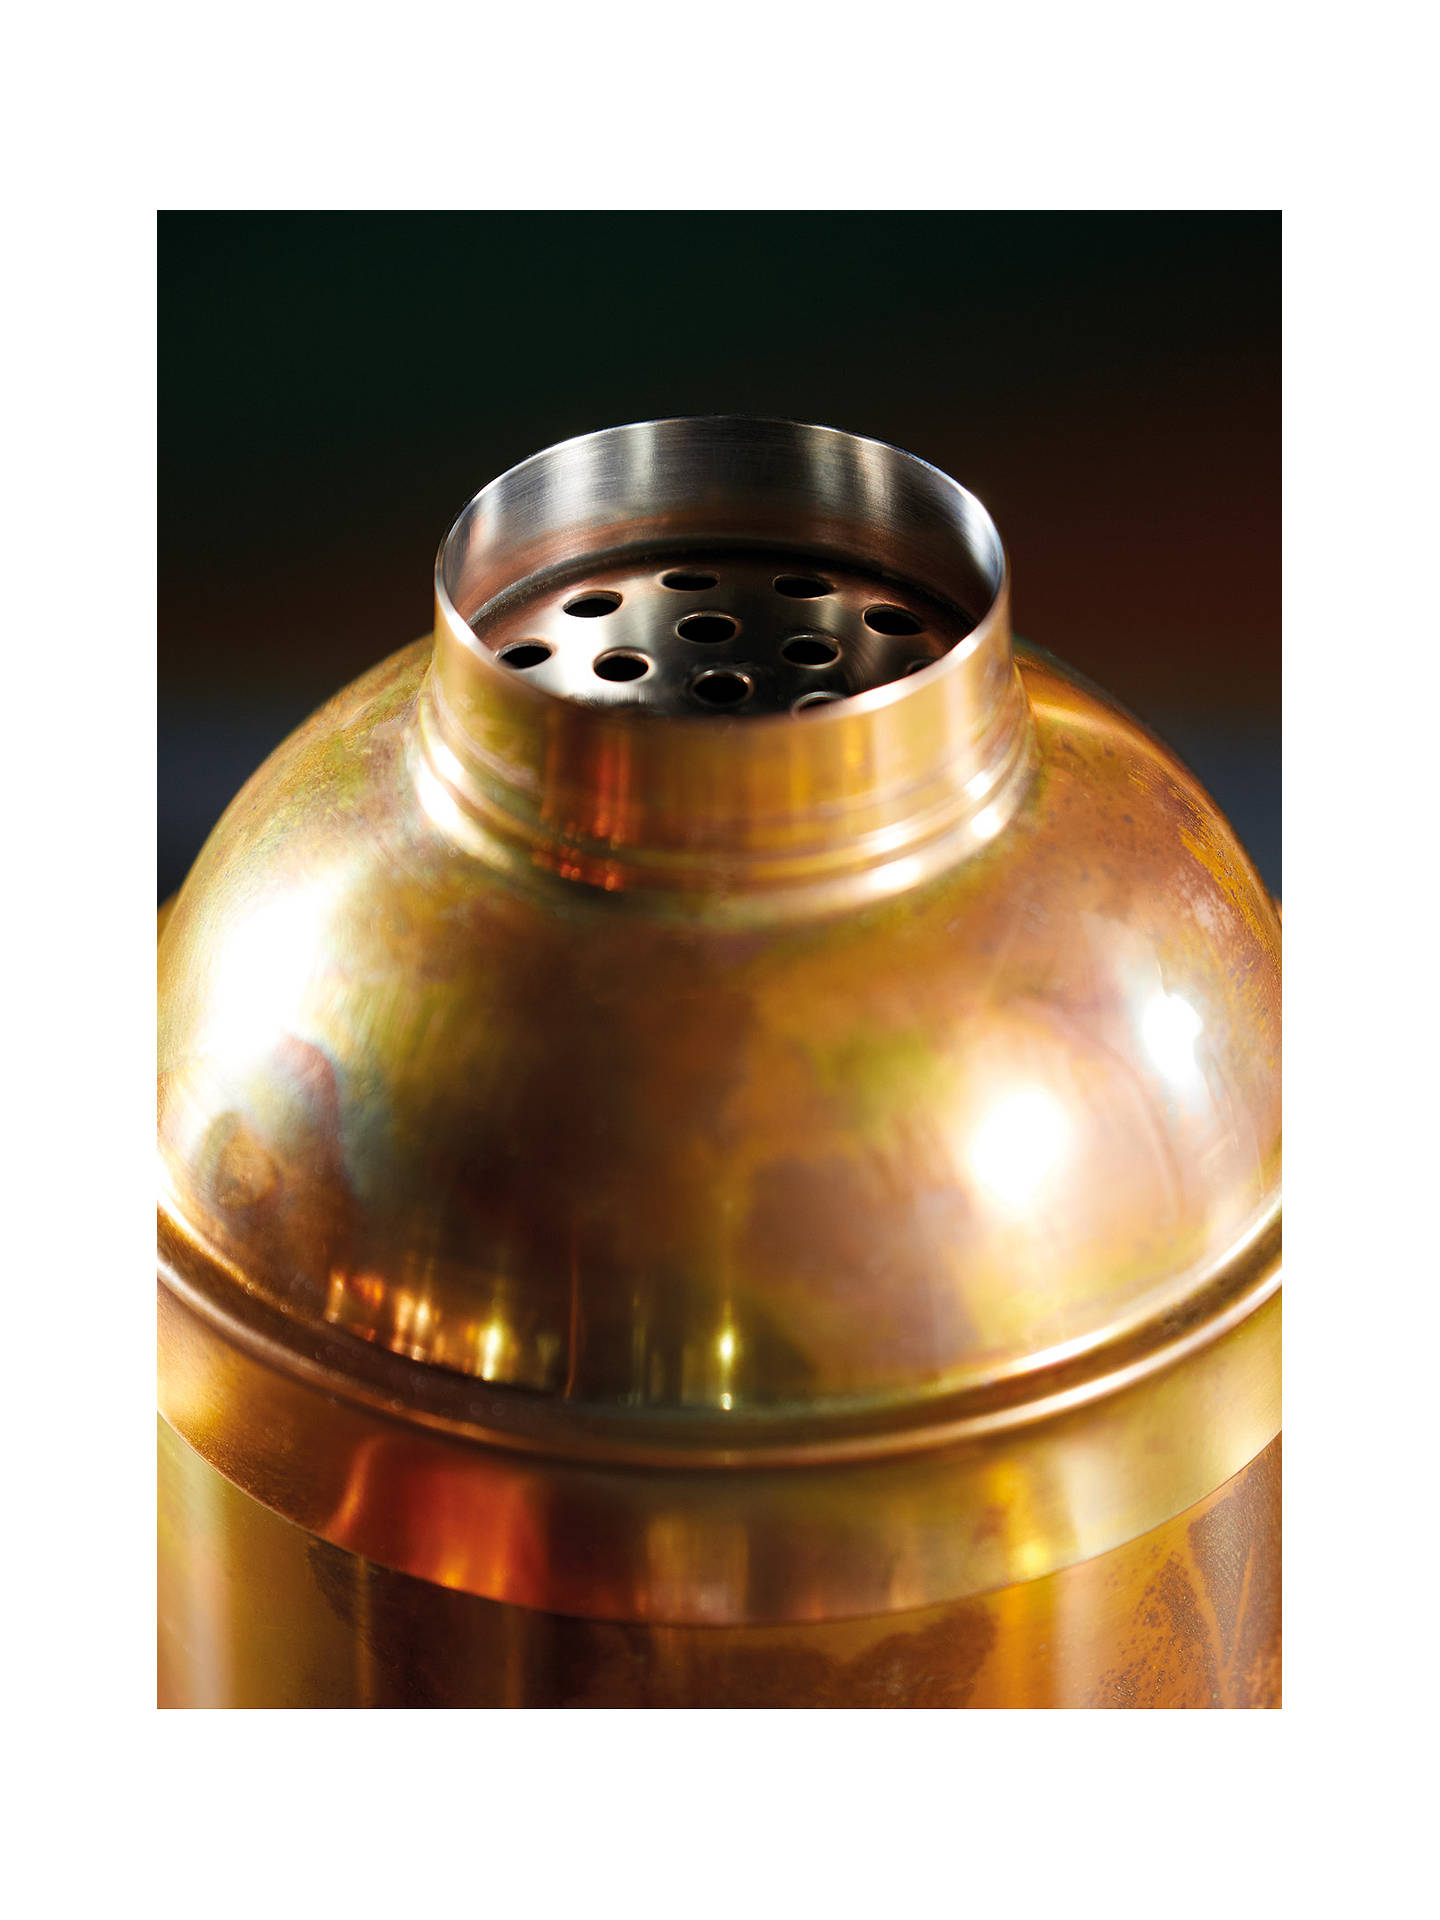 Buy Kitchen Craft BarCraft Stainless Steel Cocktail Shaker & Strainer, 700ml, Copper Online at johnlewis.com